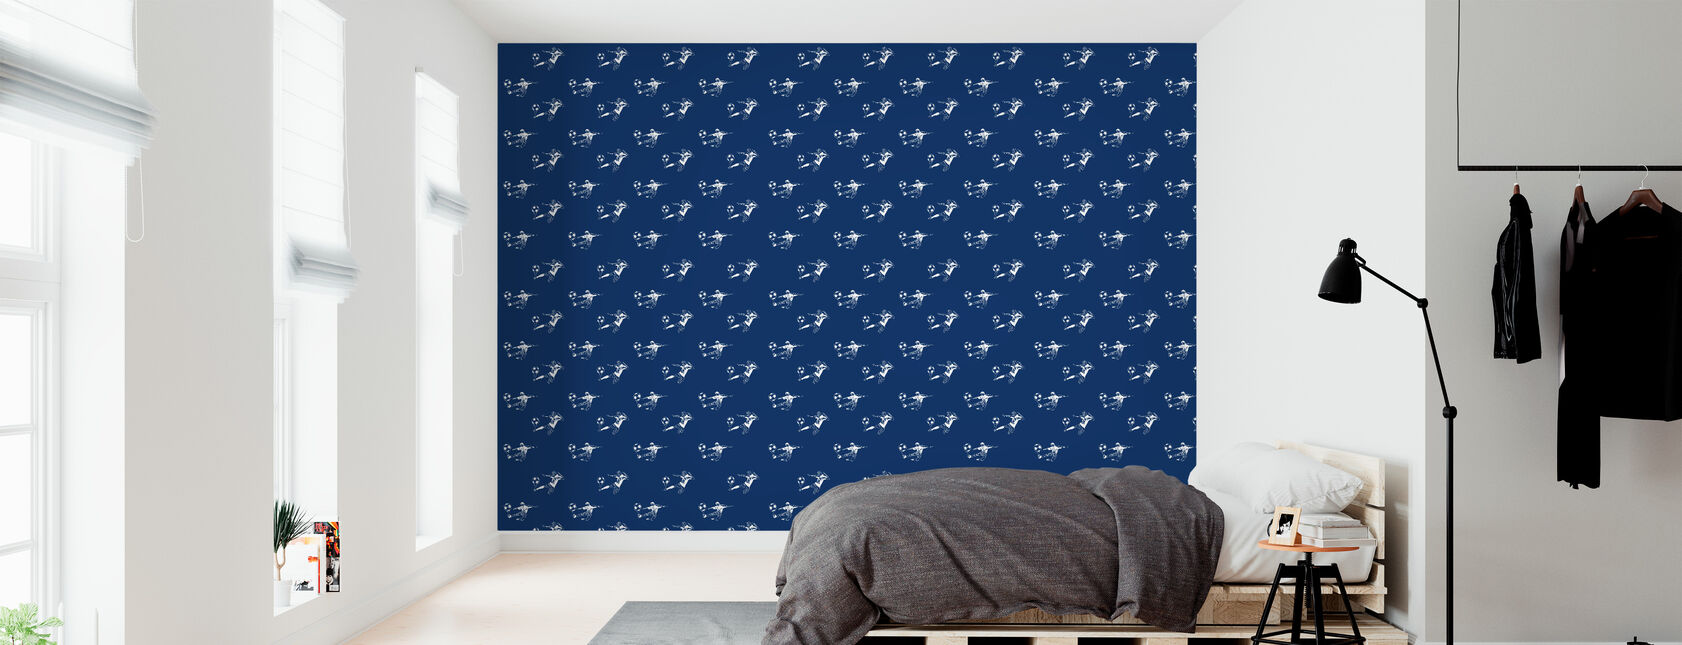 Kick It - Donkerblauw patroon - Behang - Slaapkamer